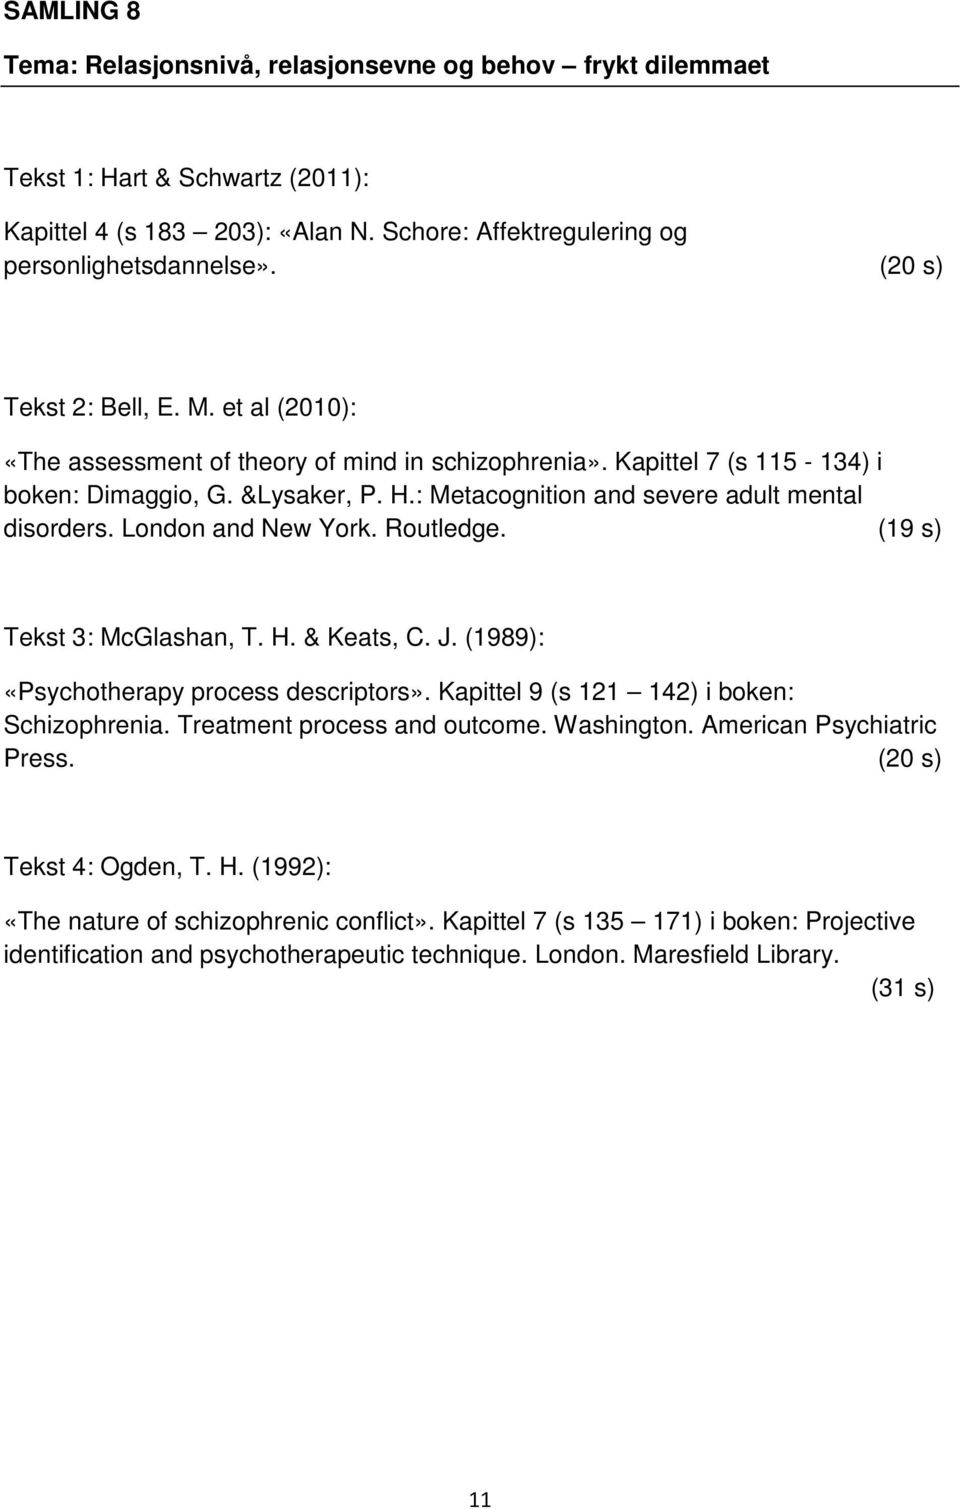 : Metacognition and severe adult mental disorders. London and New York. Routledge. (19 s) Tekst 3: McGlashan, T. H. & Keats, C. J. (1989): «Psychotherapy process descriptors».